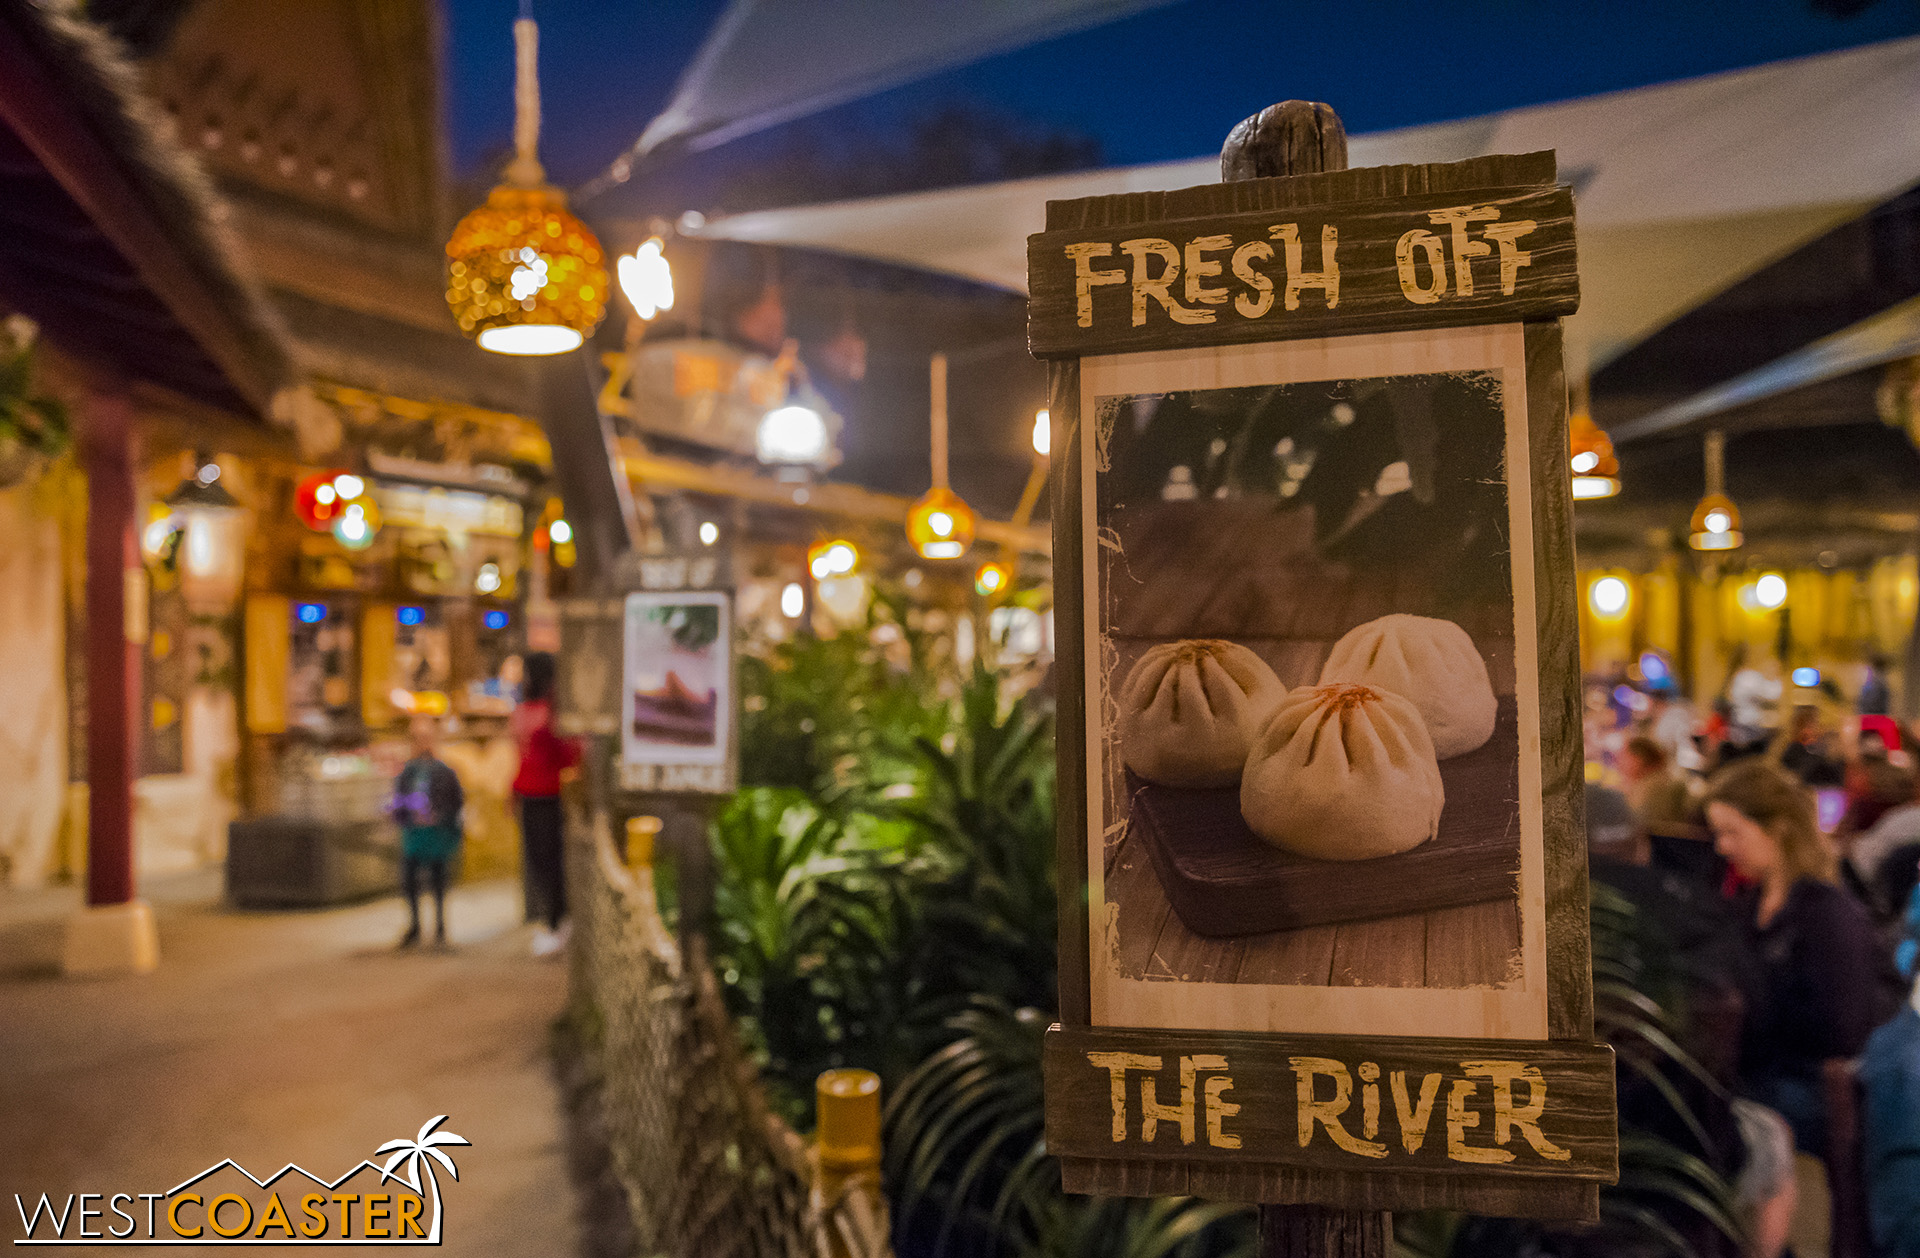 Heading into the food queue, guests are greeted by some signage promising delectable bites to be had.